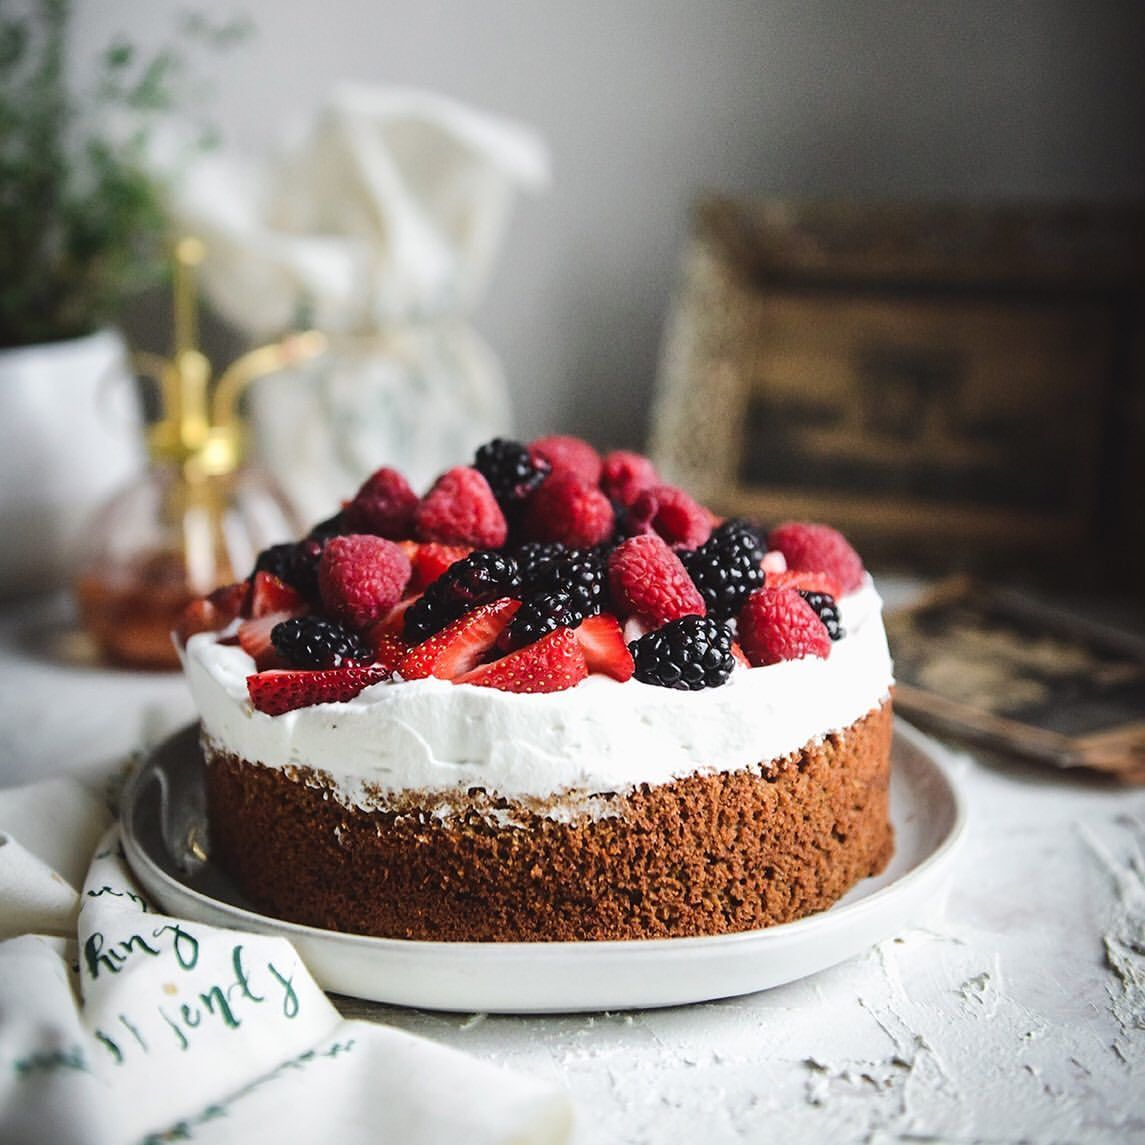 Vanilla Butter Cake with Berries